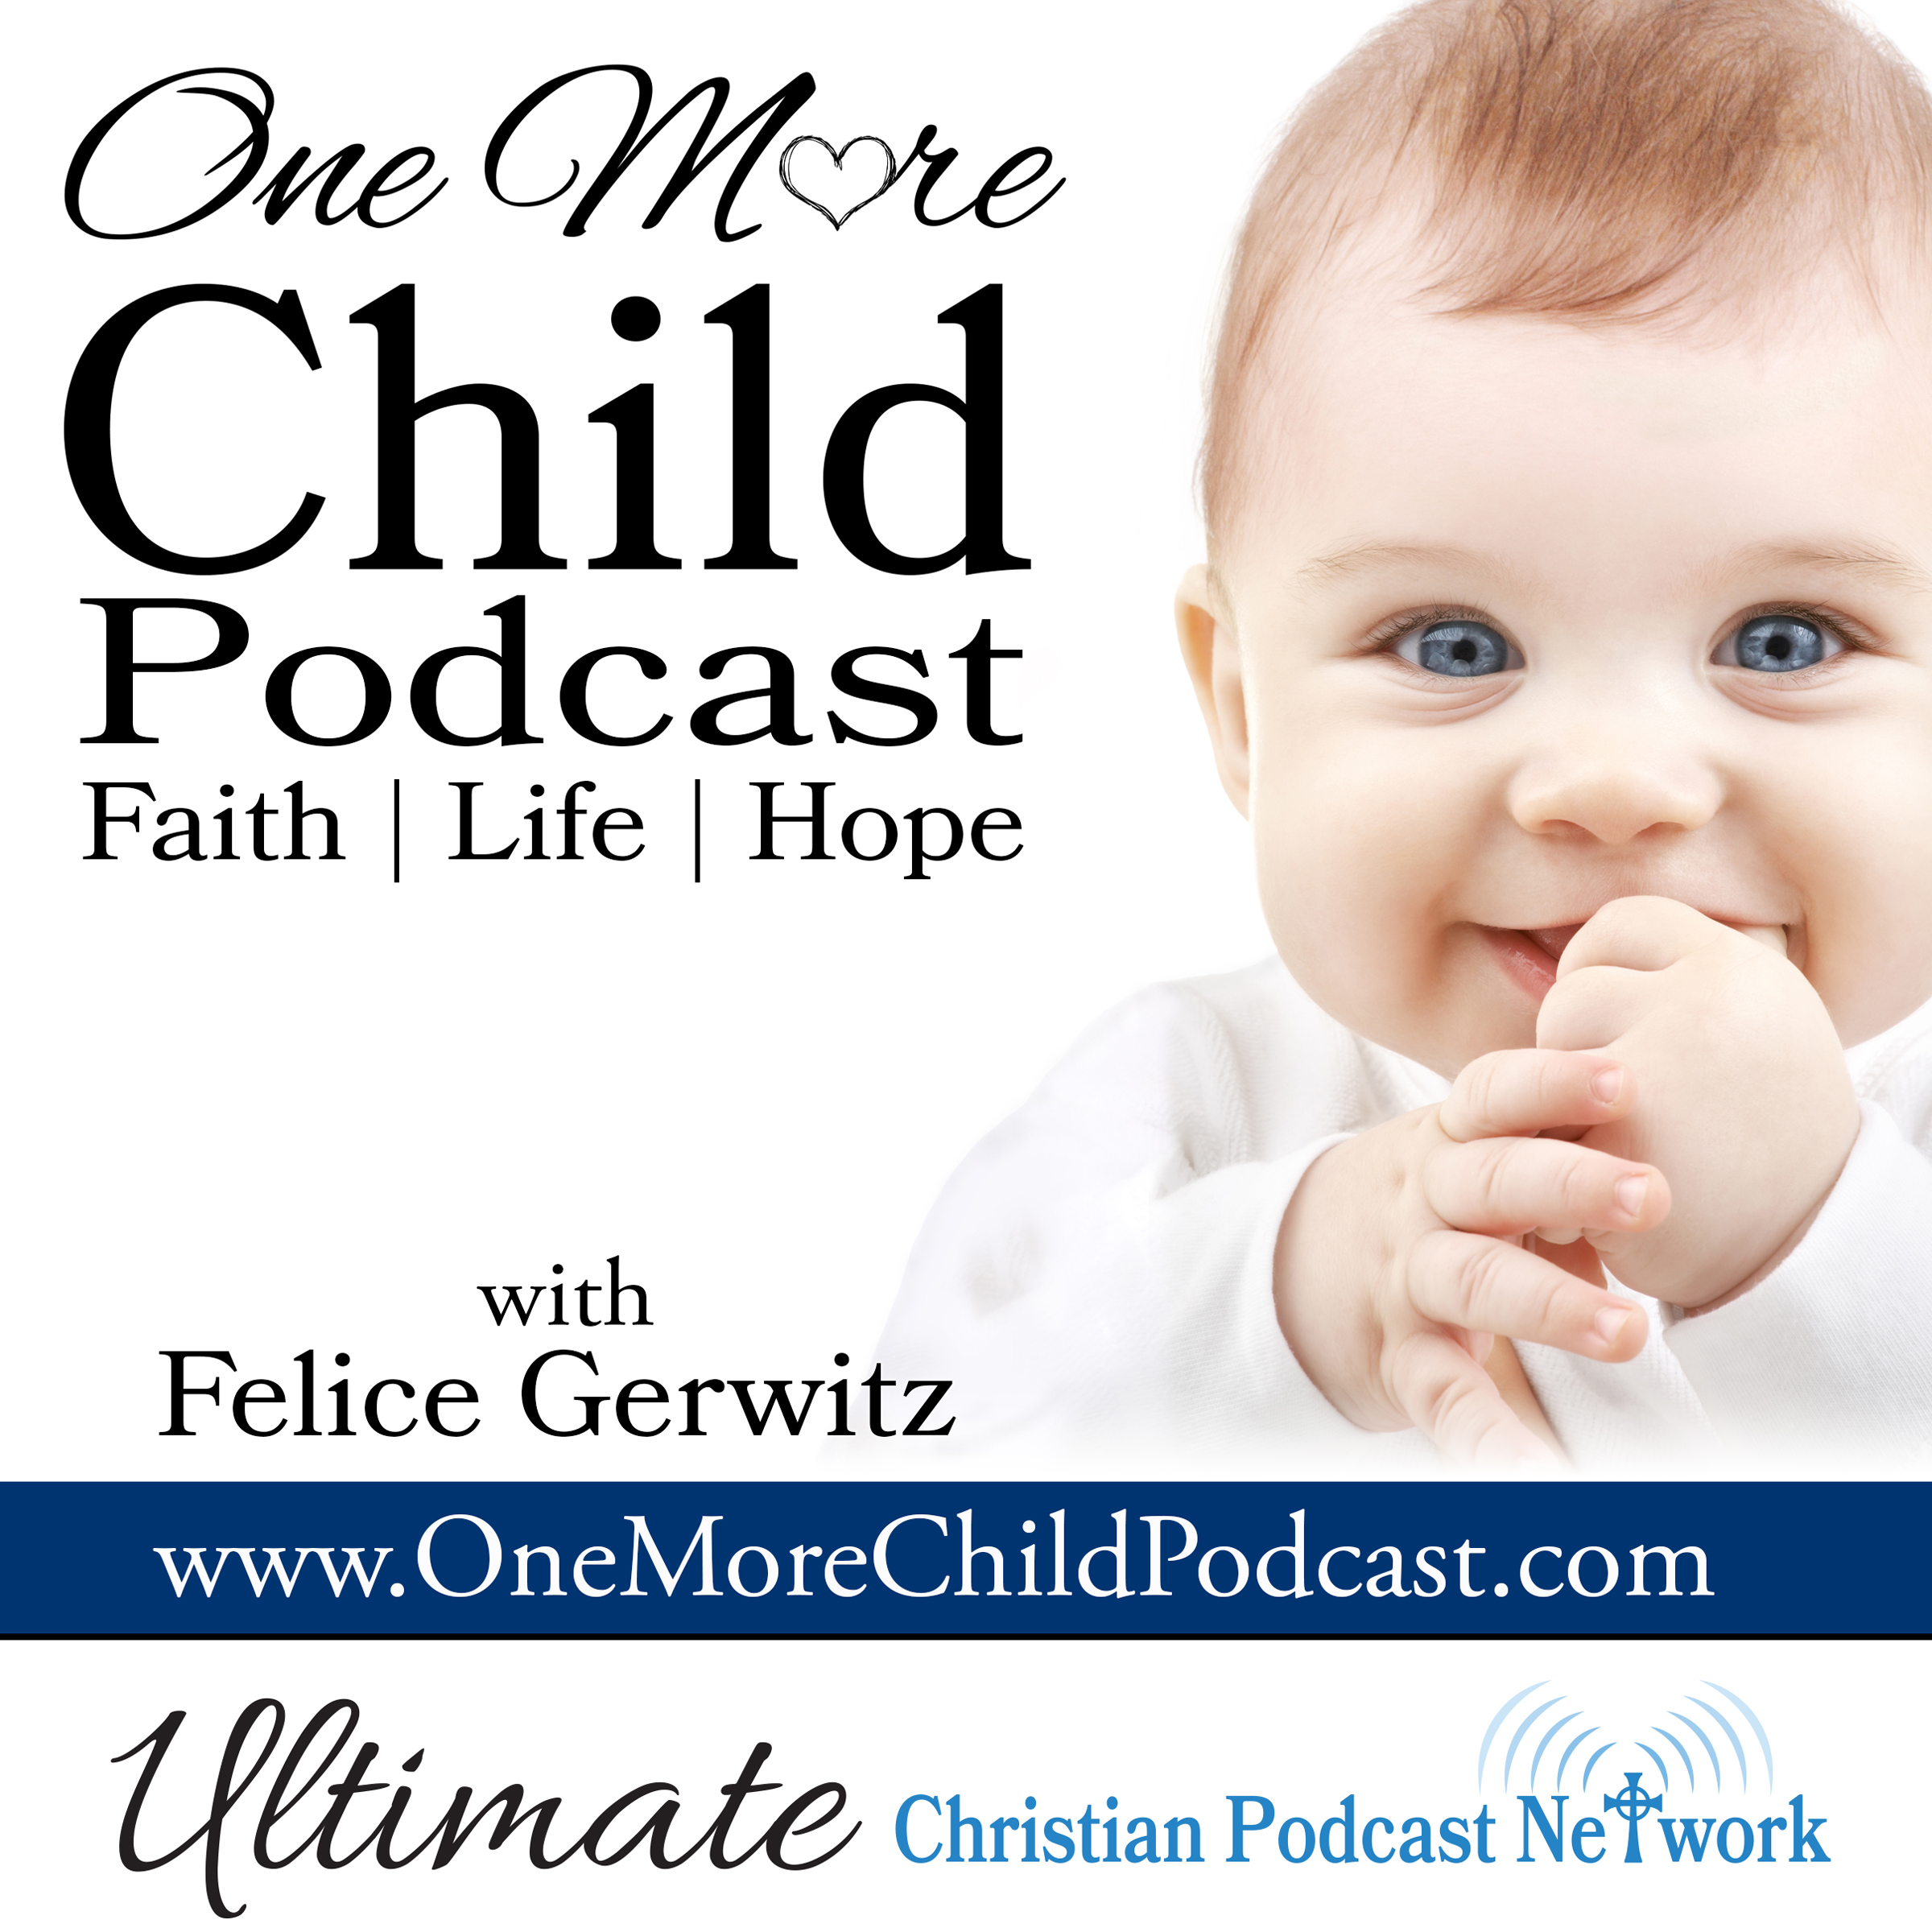 One More Child Podcast - Ultimate Christian Podcast Network